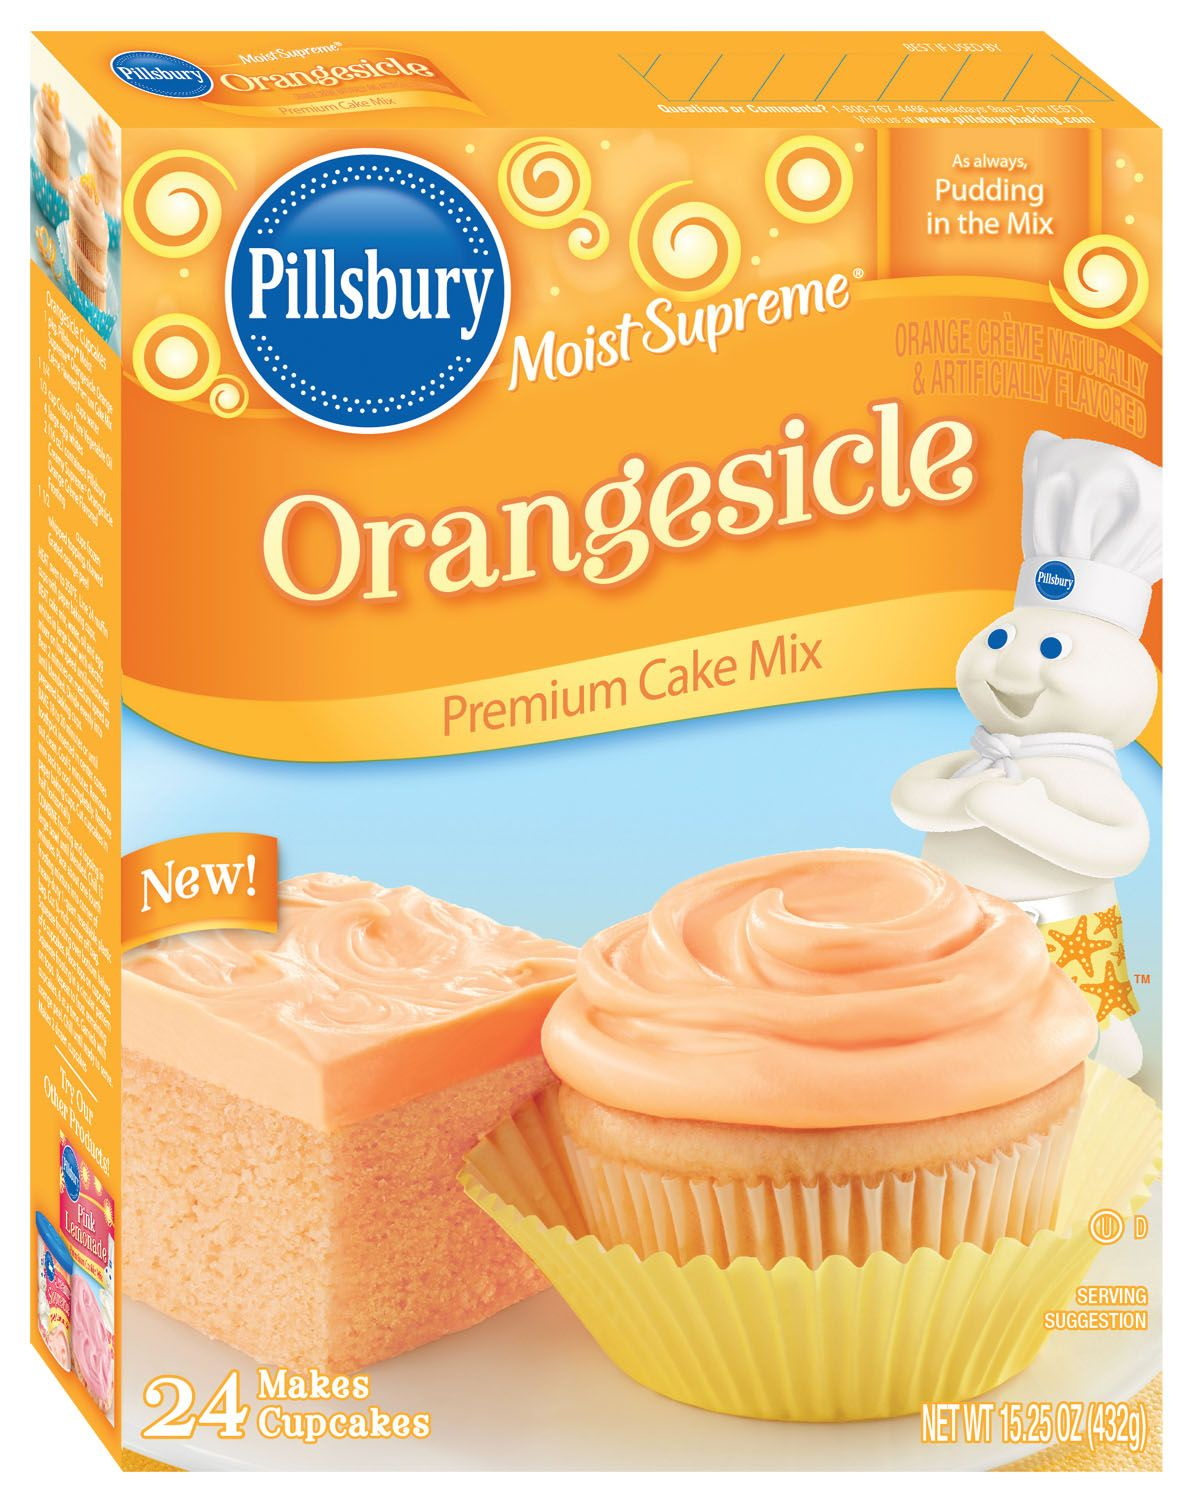 Orangesicle Cake Mix I Ve Been Looking For A Good Orange